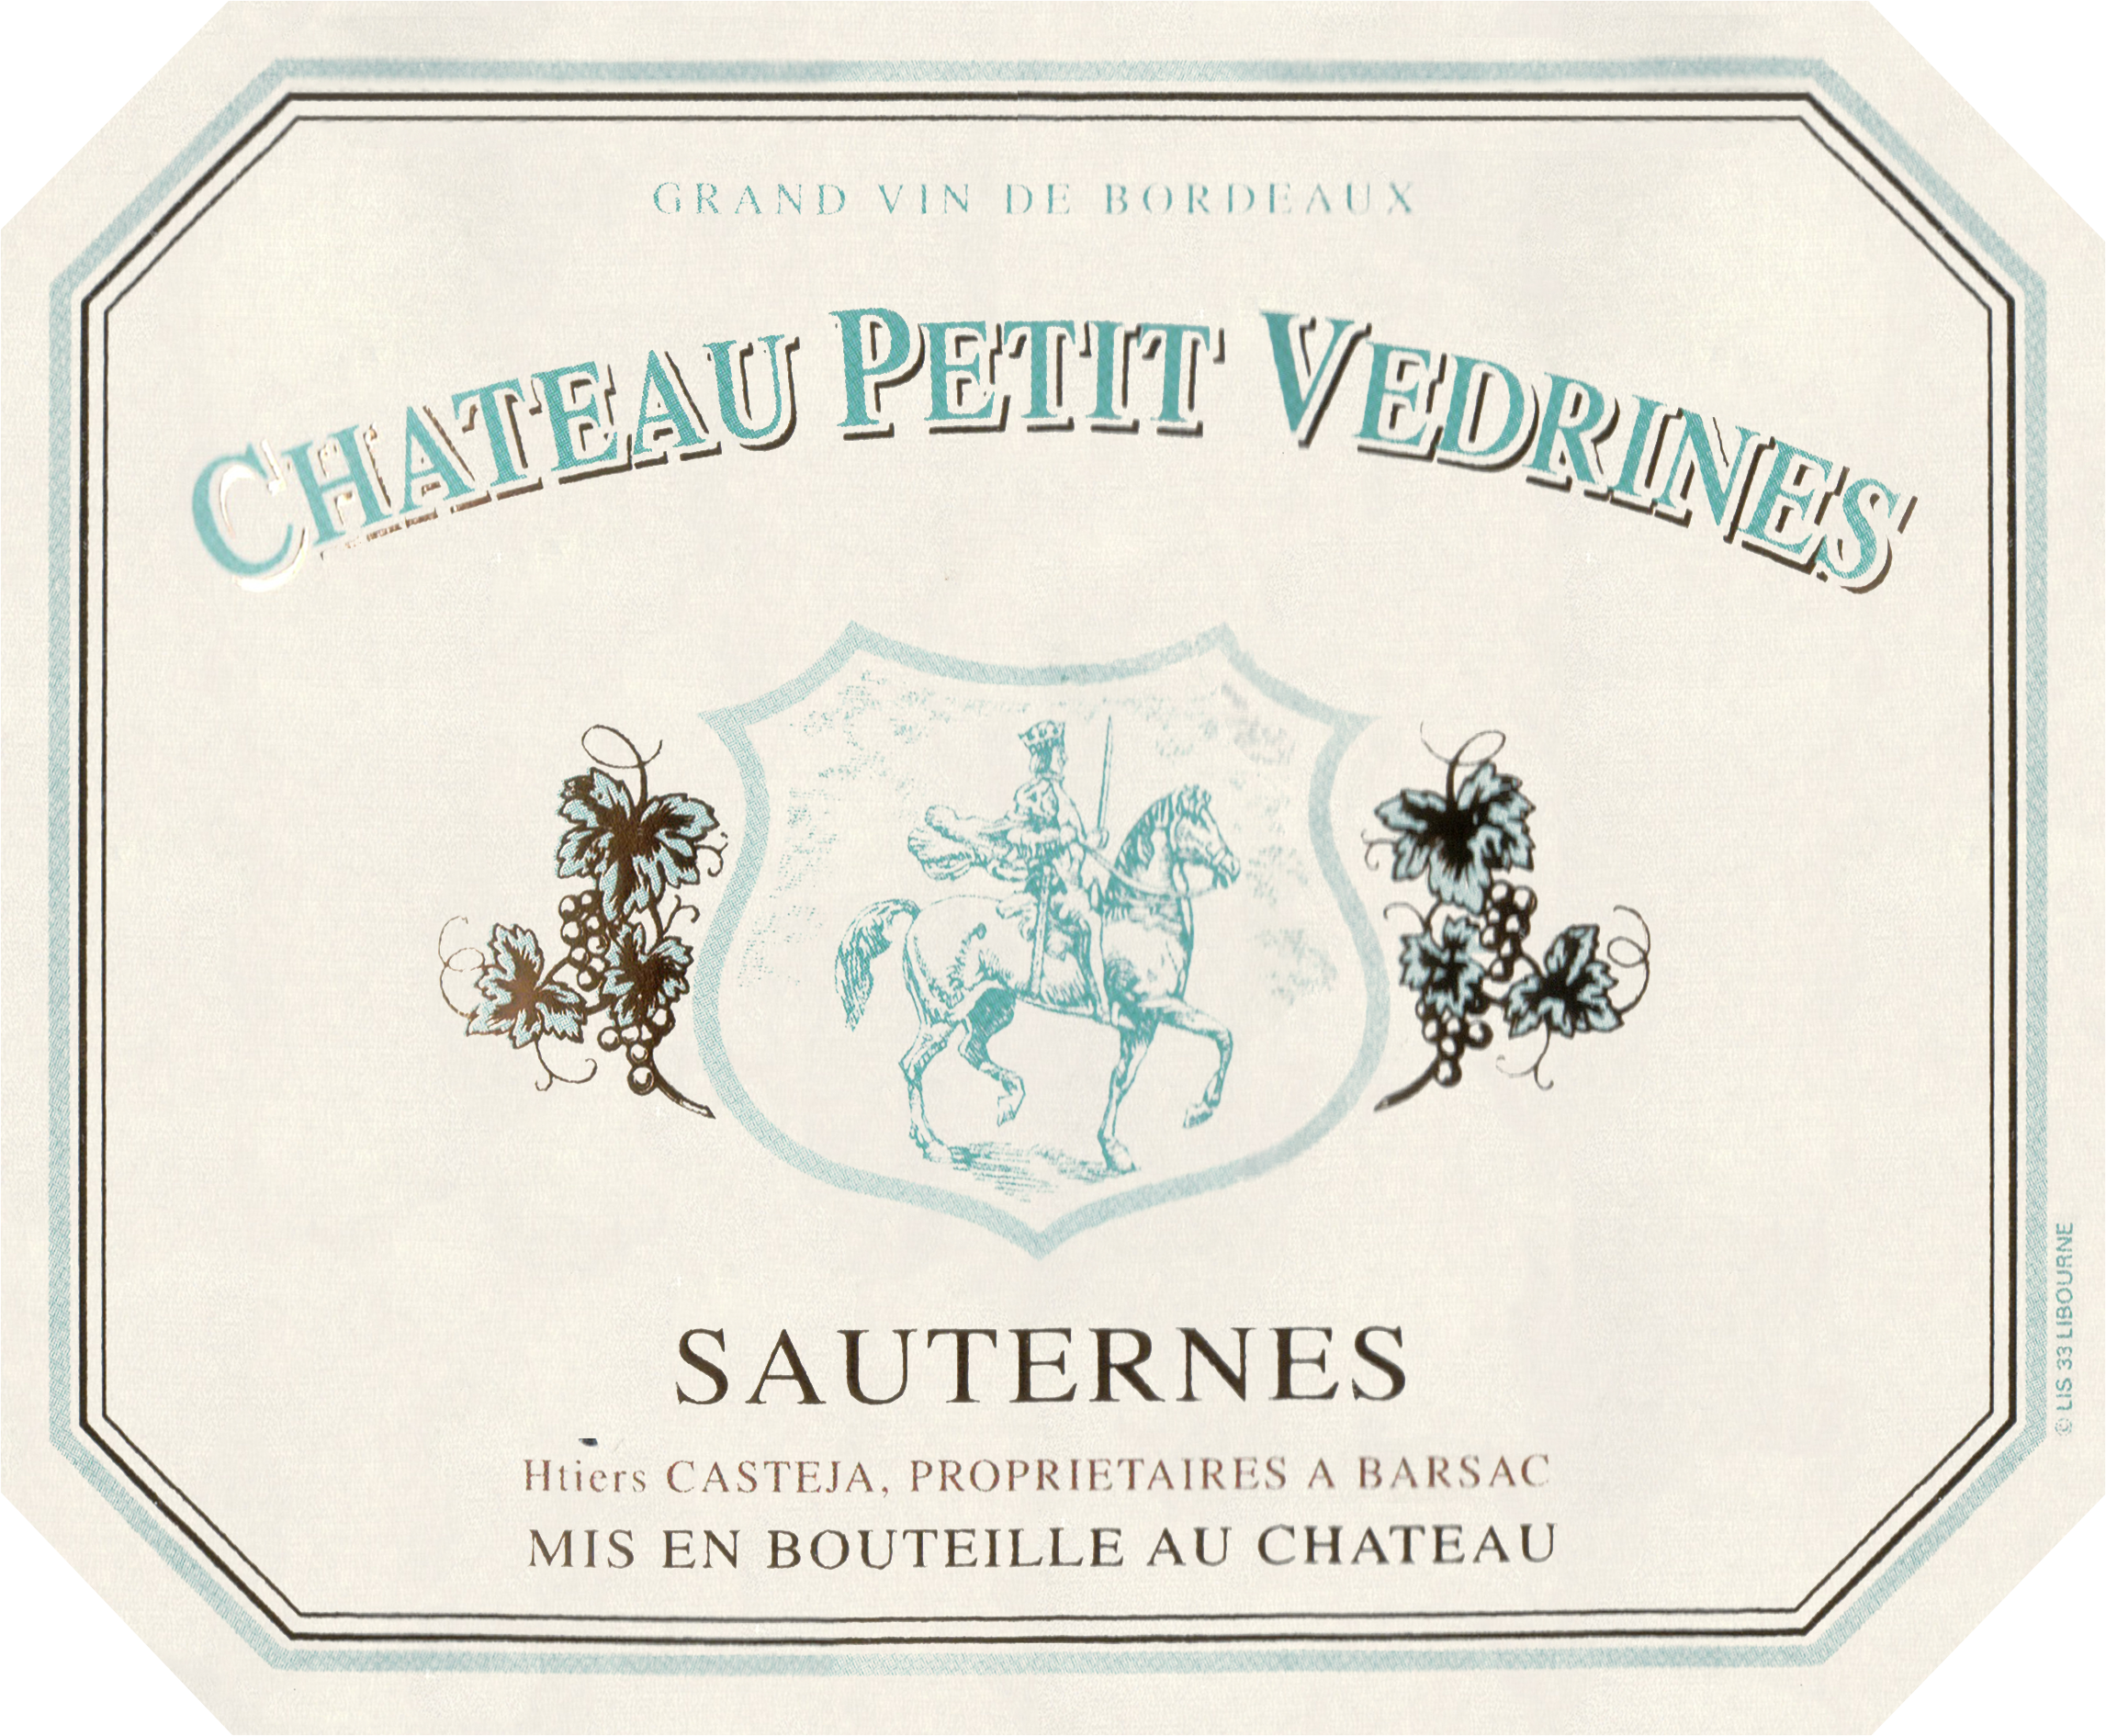 Chateau Petit Vedrines 2015